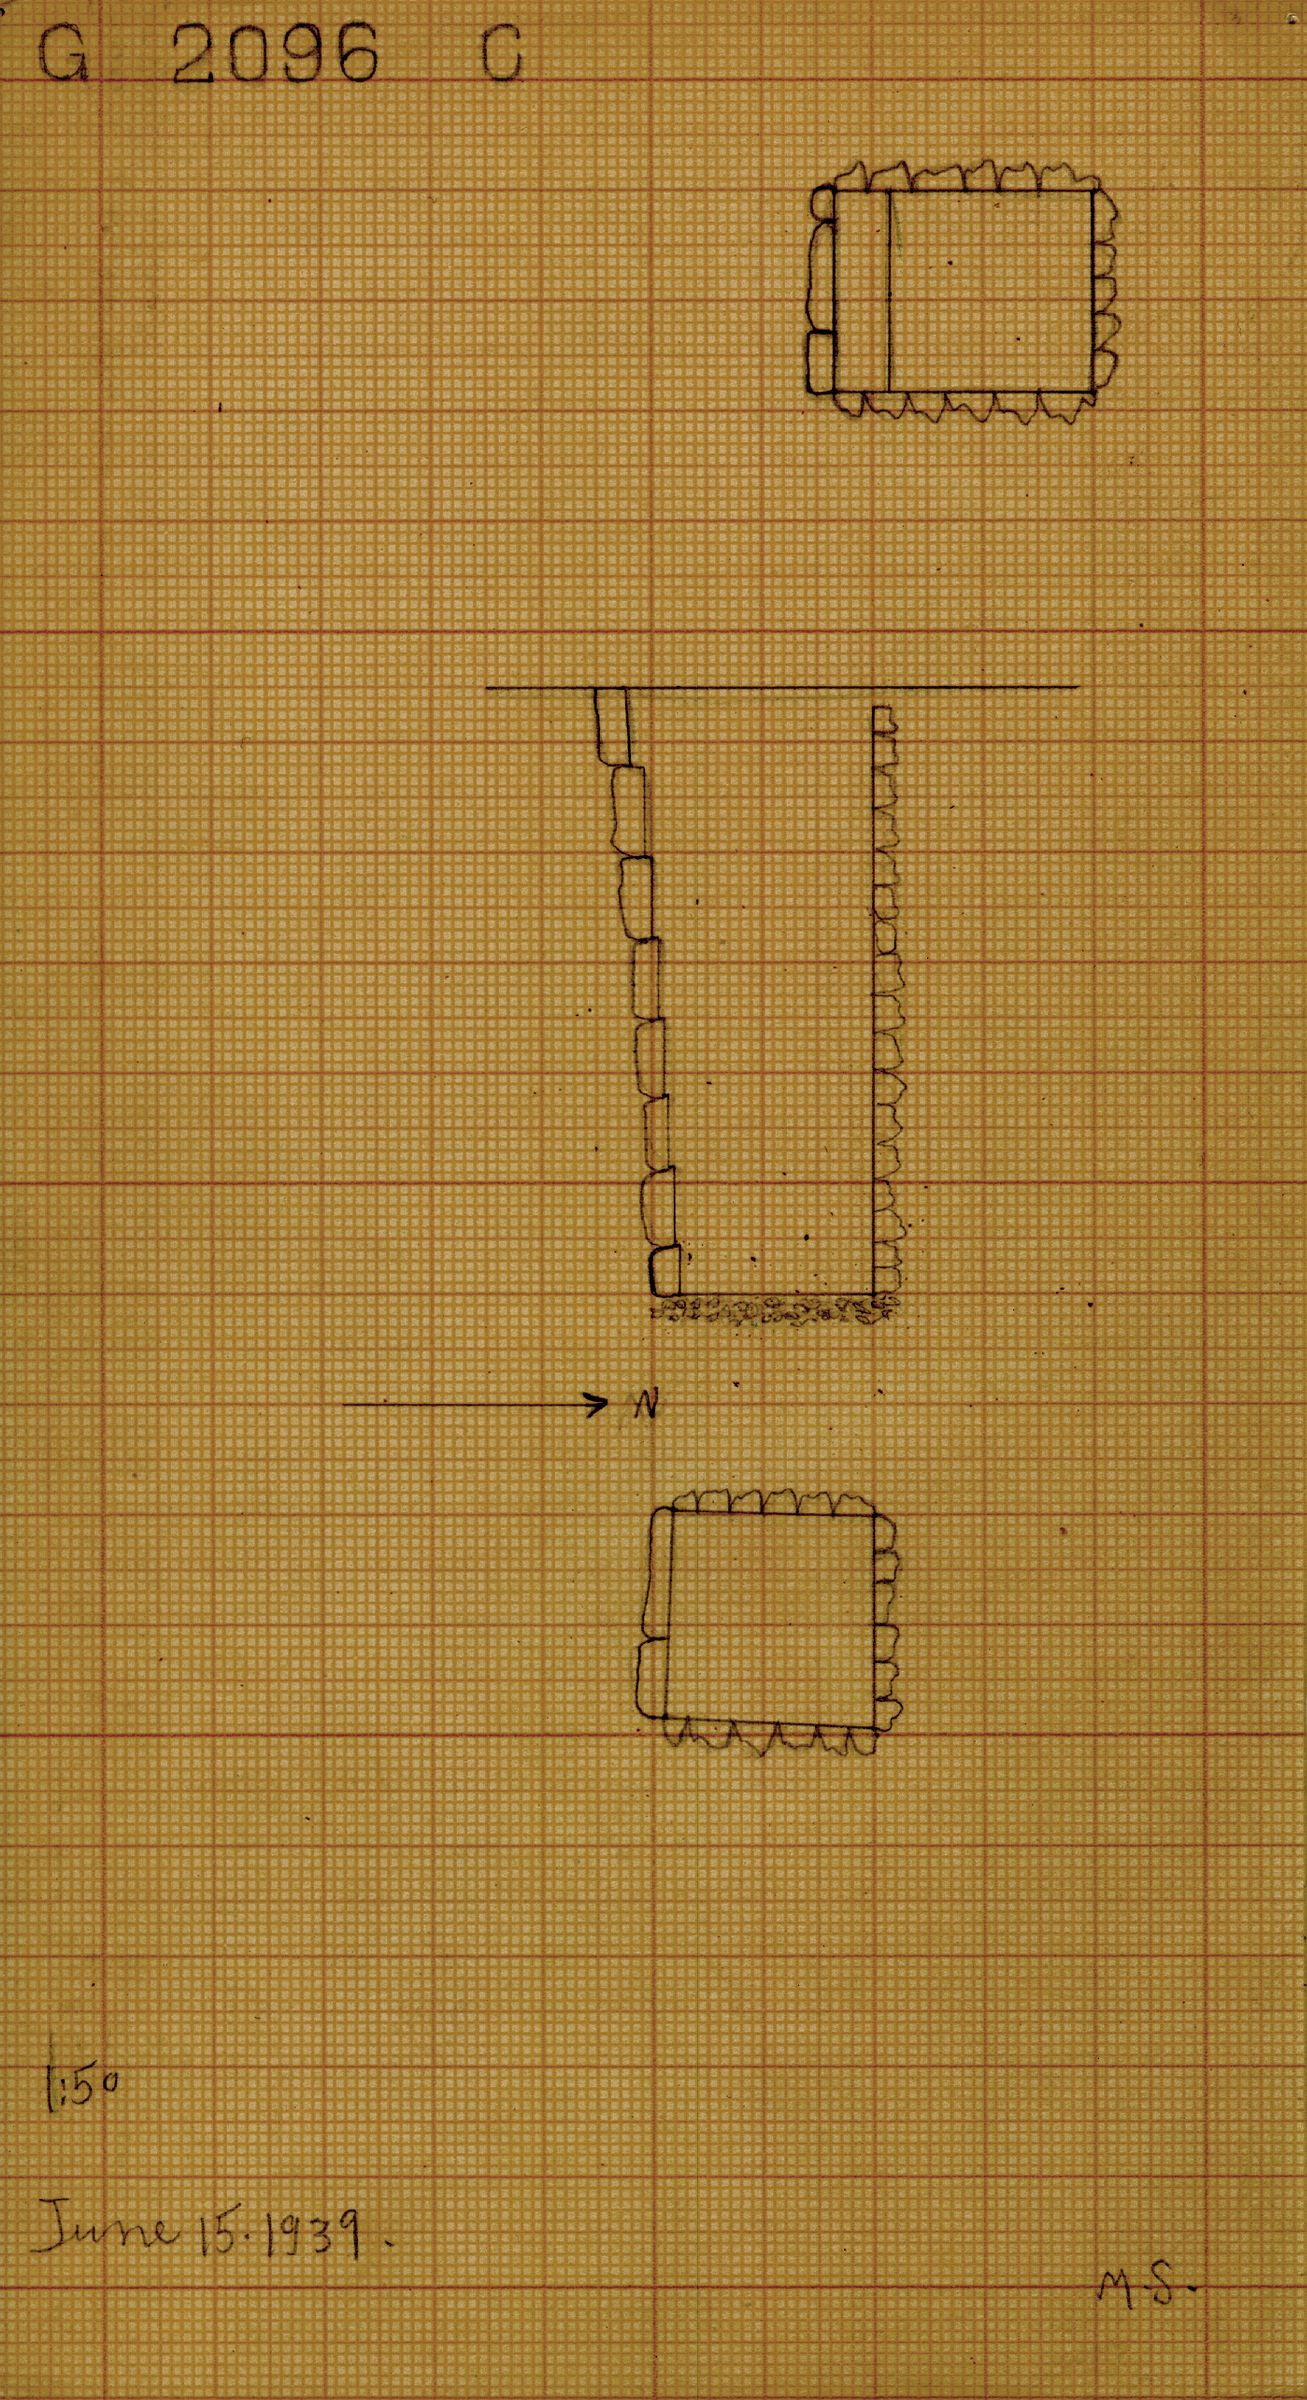 Maps and plans: G 2096, Shaft C